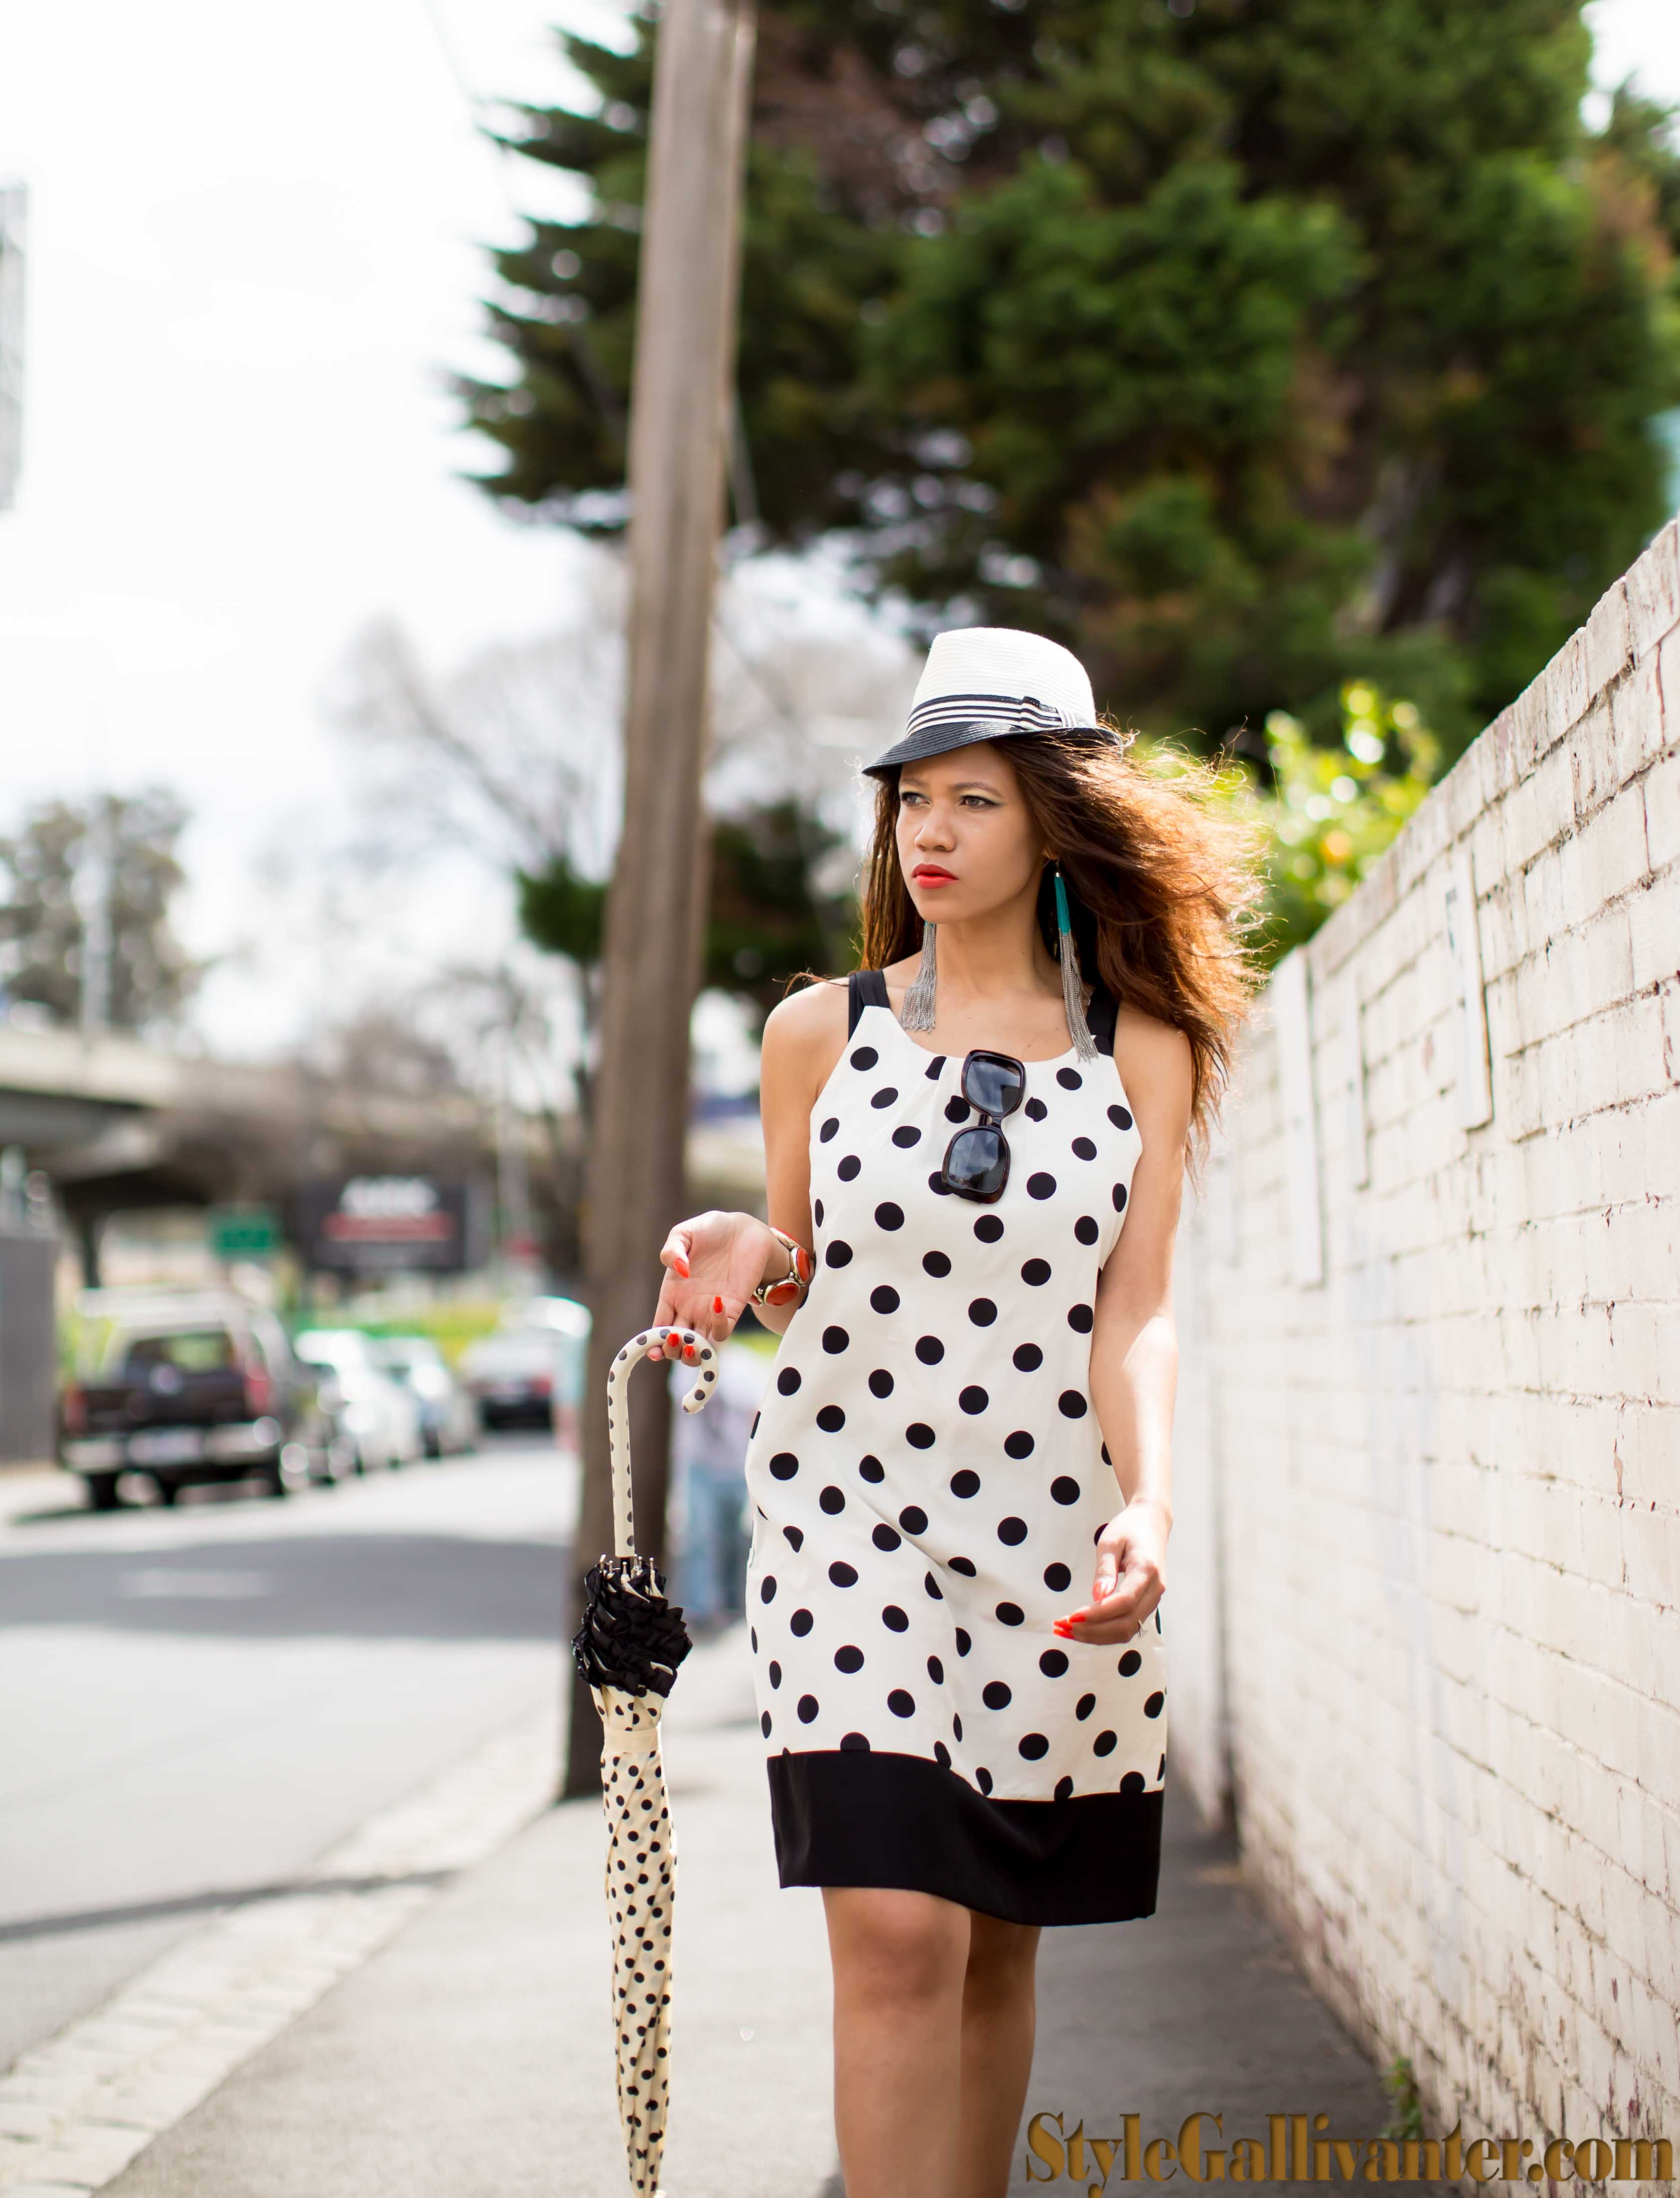 polka-dot-editorials_ a-line-dress-editorials_vogue-editorials-polka-dots_best-personal-style-bloggers-africa_best-personal-style-bloggers-australia_africas-best-fashion-blog-4